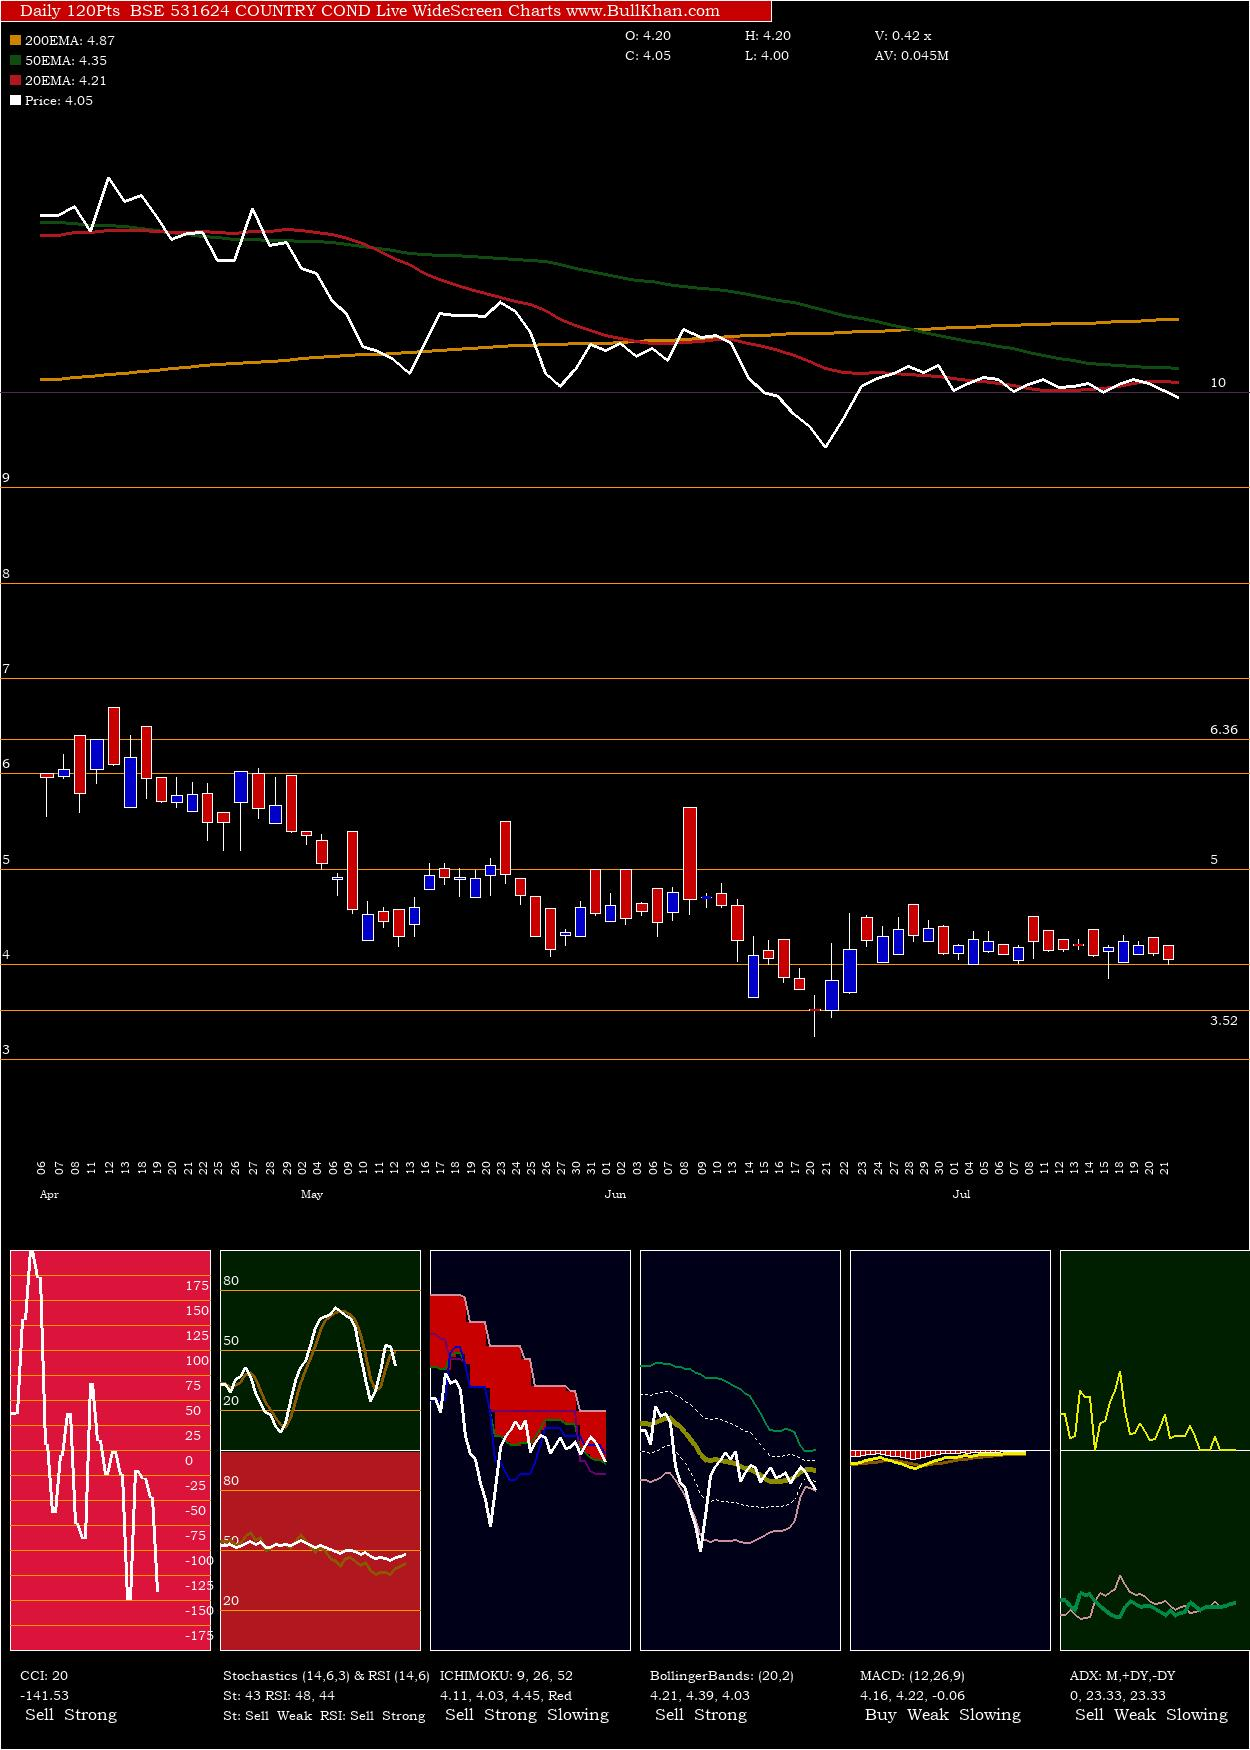 Country Cond charts and indicators